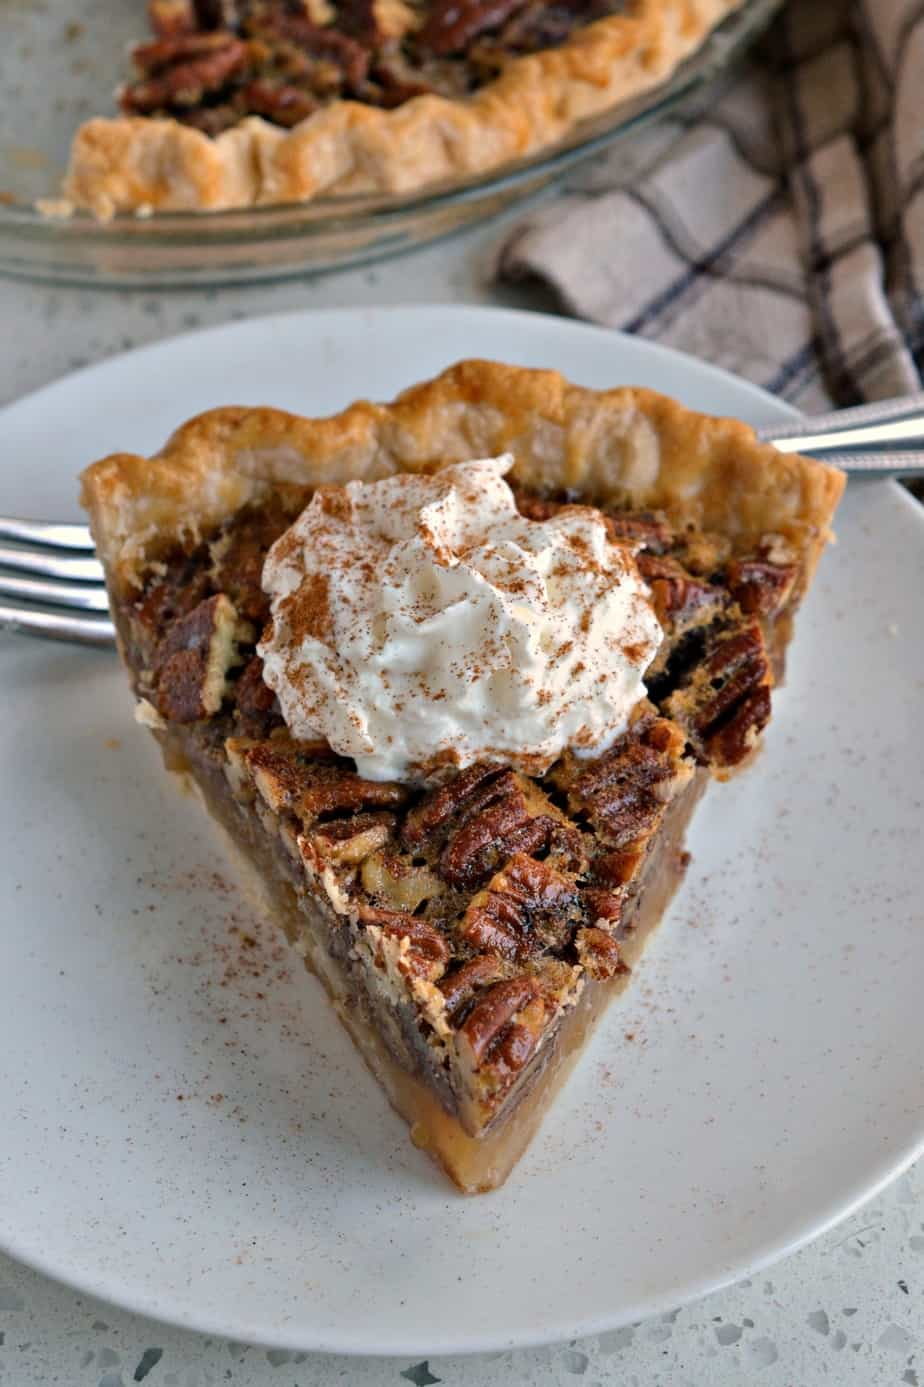 Impress your guests with this perfect Southern Pecan Pie.